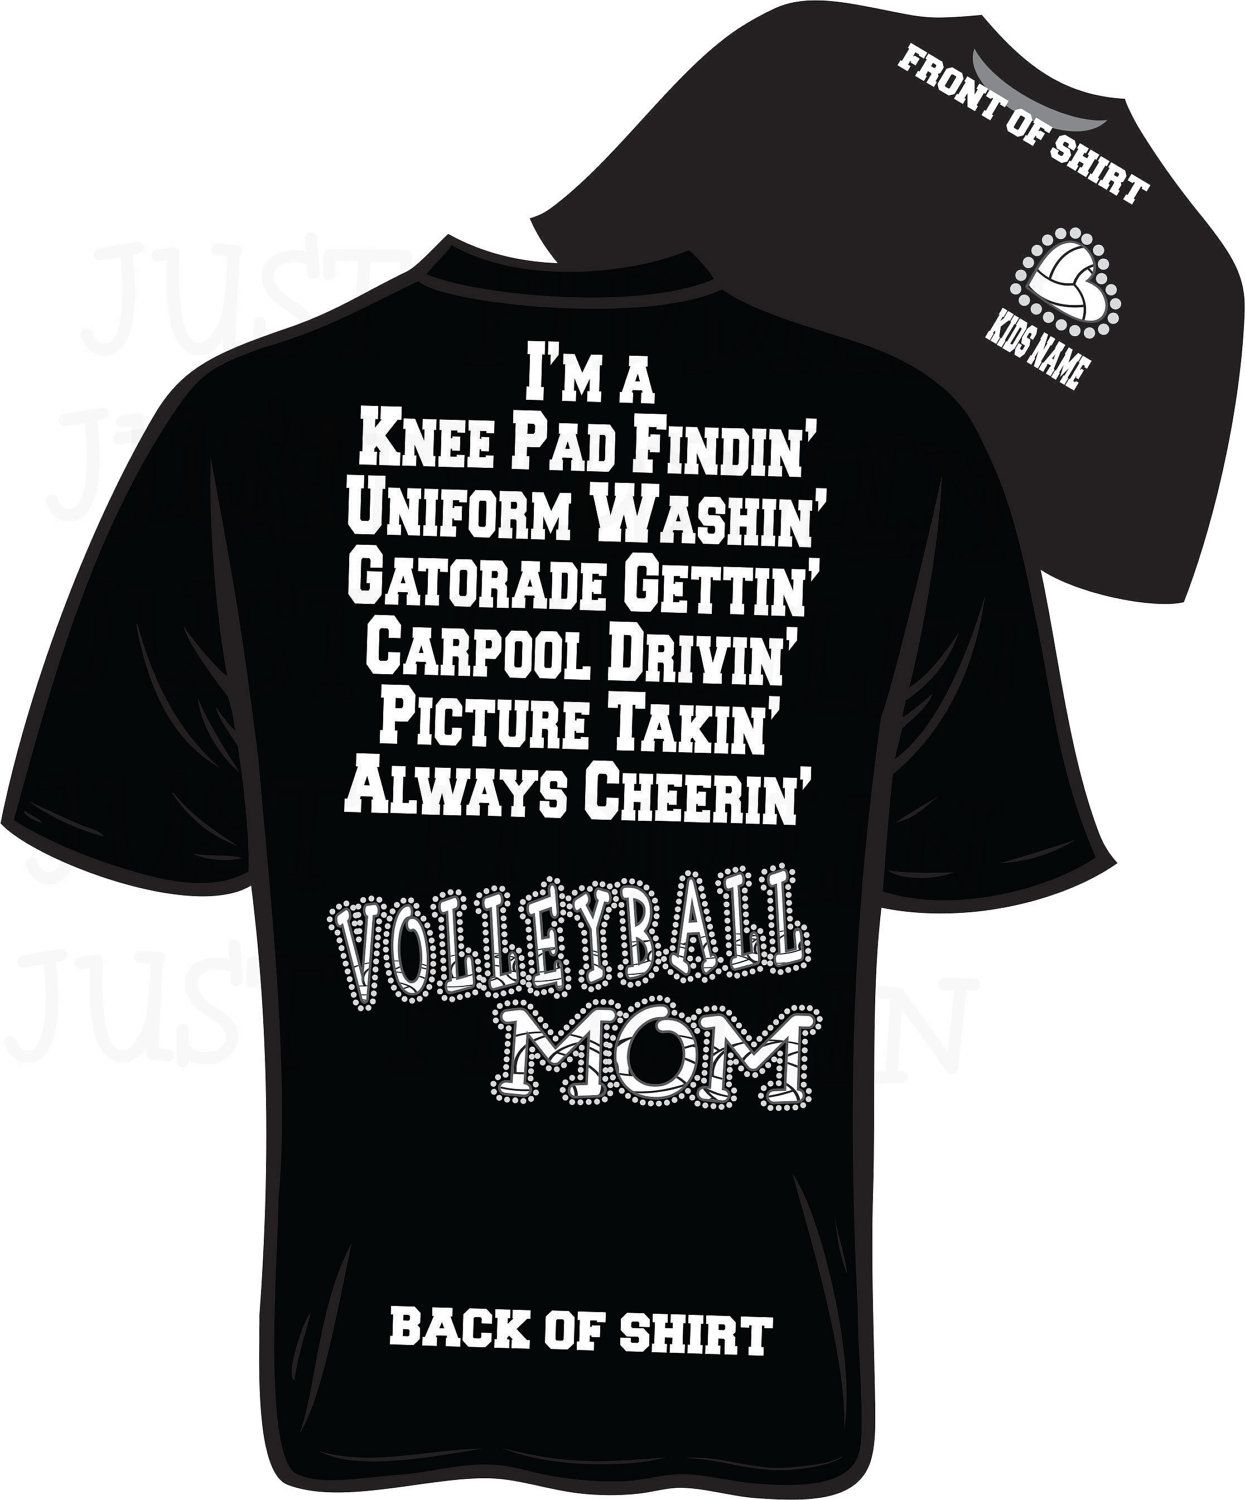 Hank Kimner Prinzess Volleyball Mom Bling T Shirt Please See Description Before Ordering 27 95 Via Etsy T Shirt Designs Volleyball Shirts Volleyball